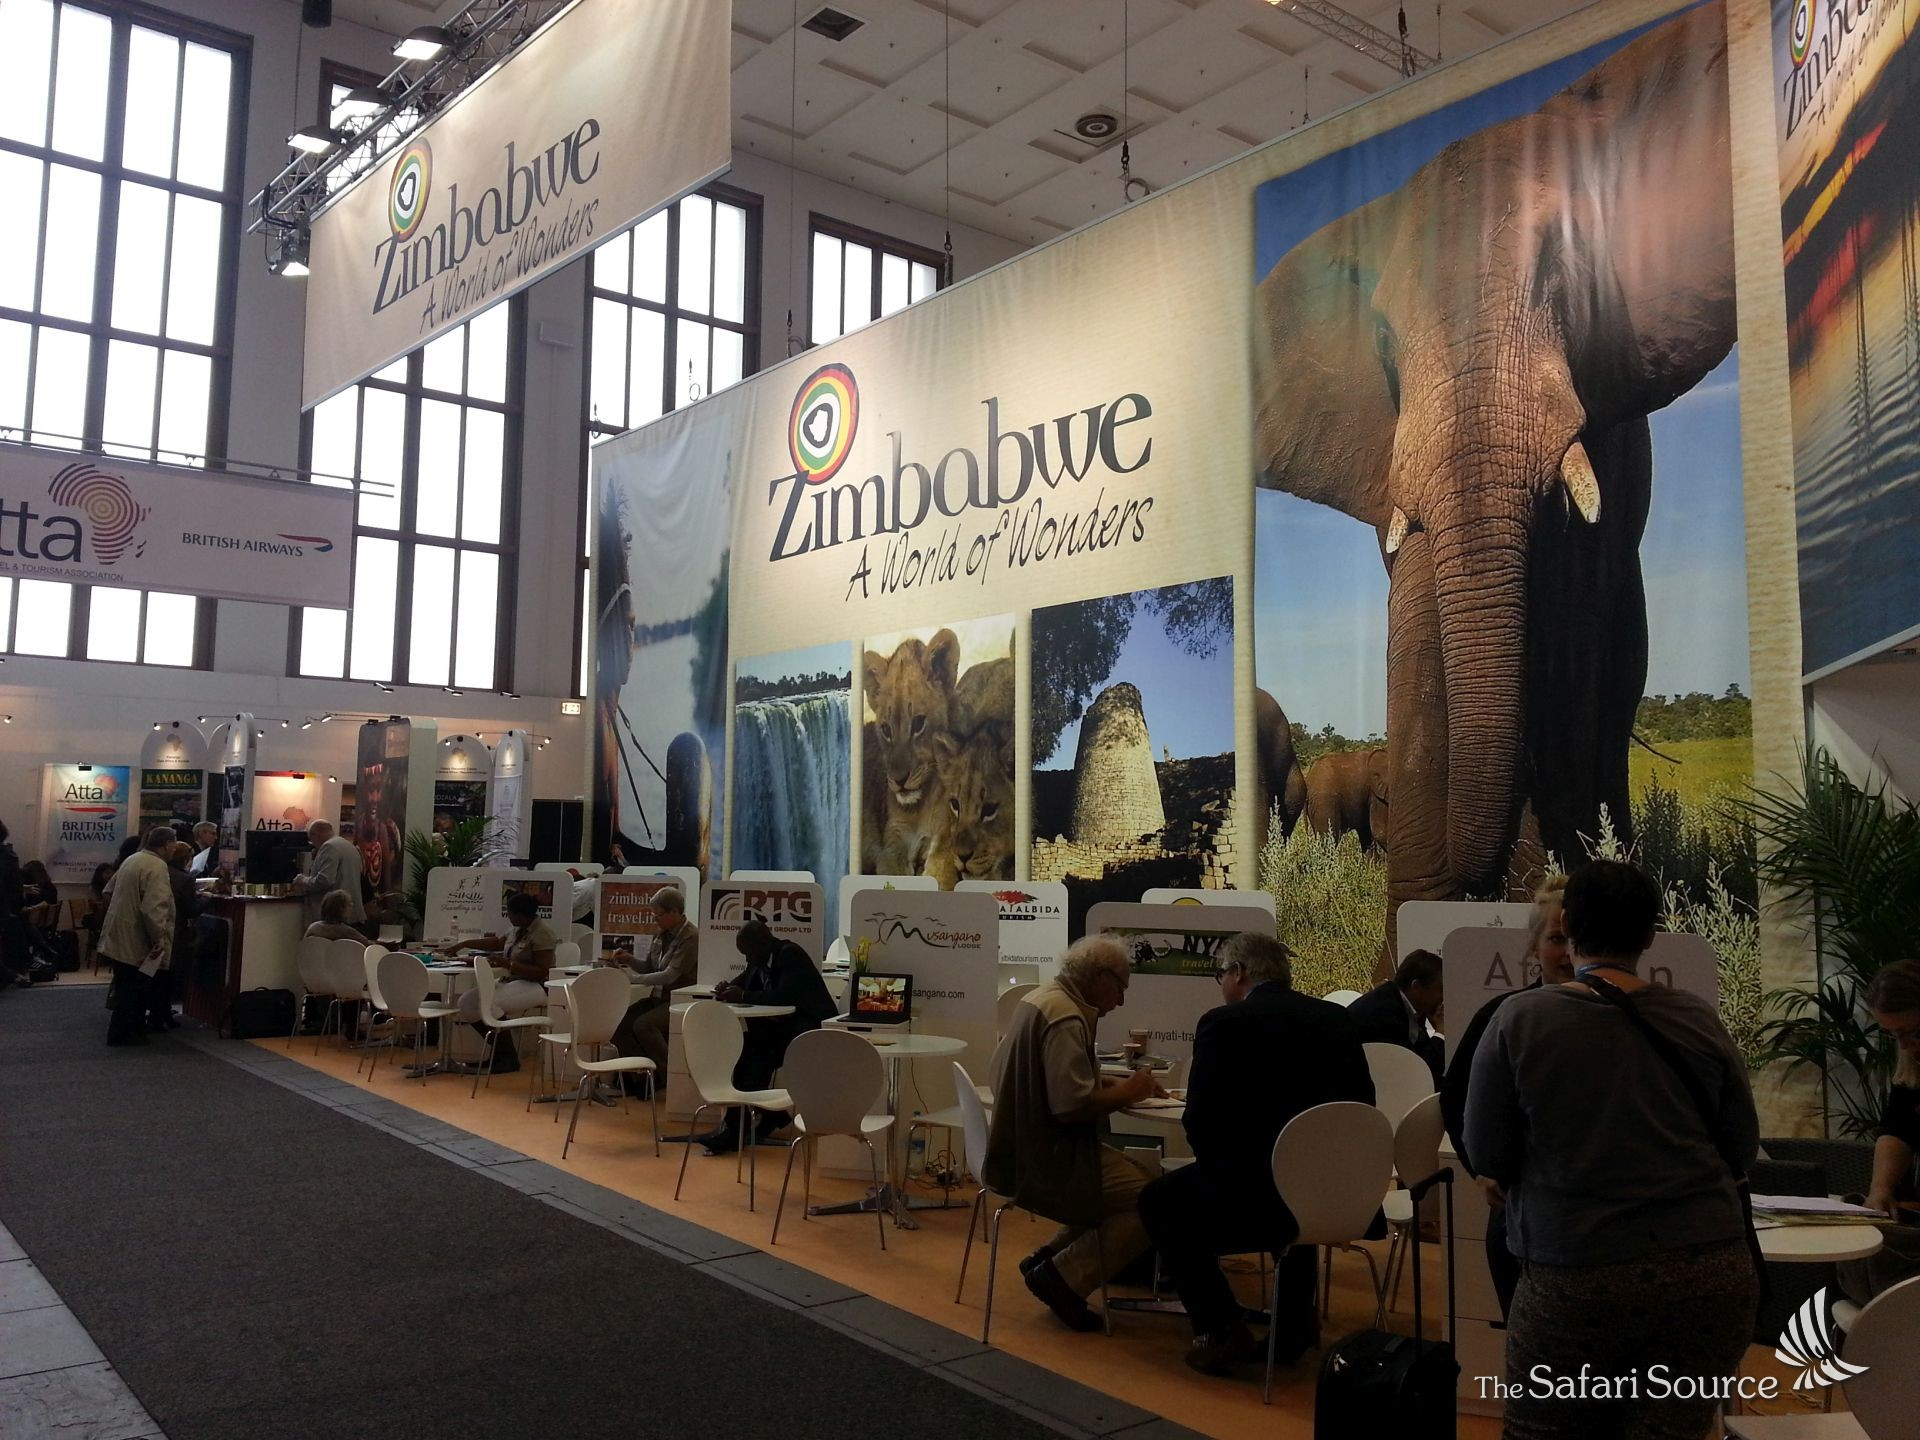 Zimbabwe Stand at ITB Berlin 2016 in Europe, Travel Trade Show.